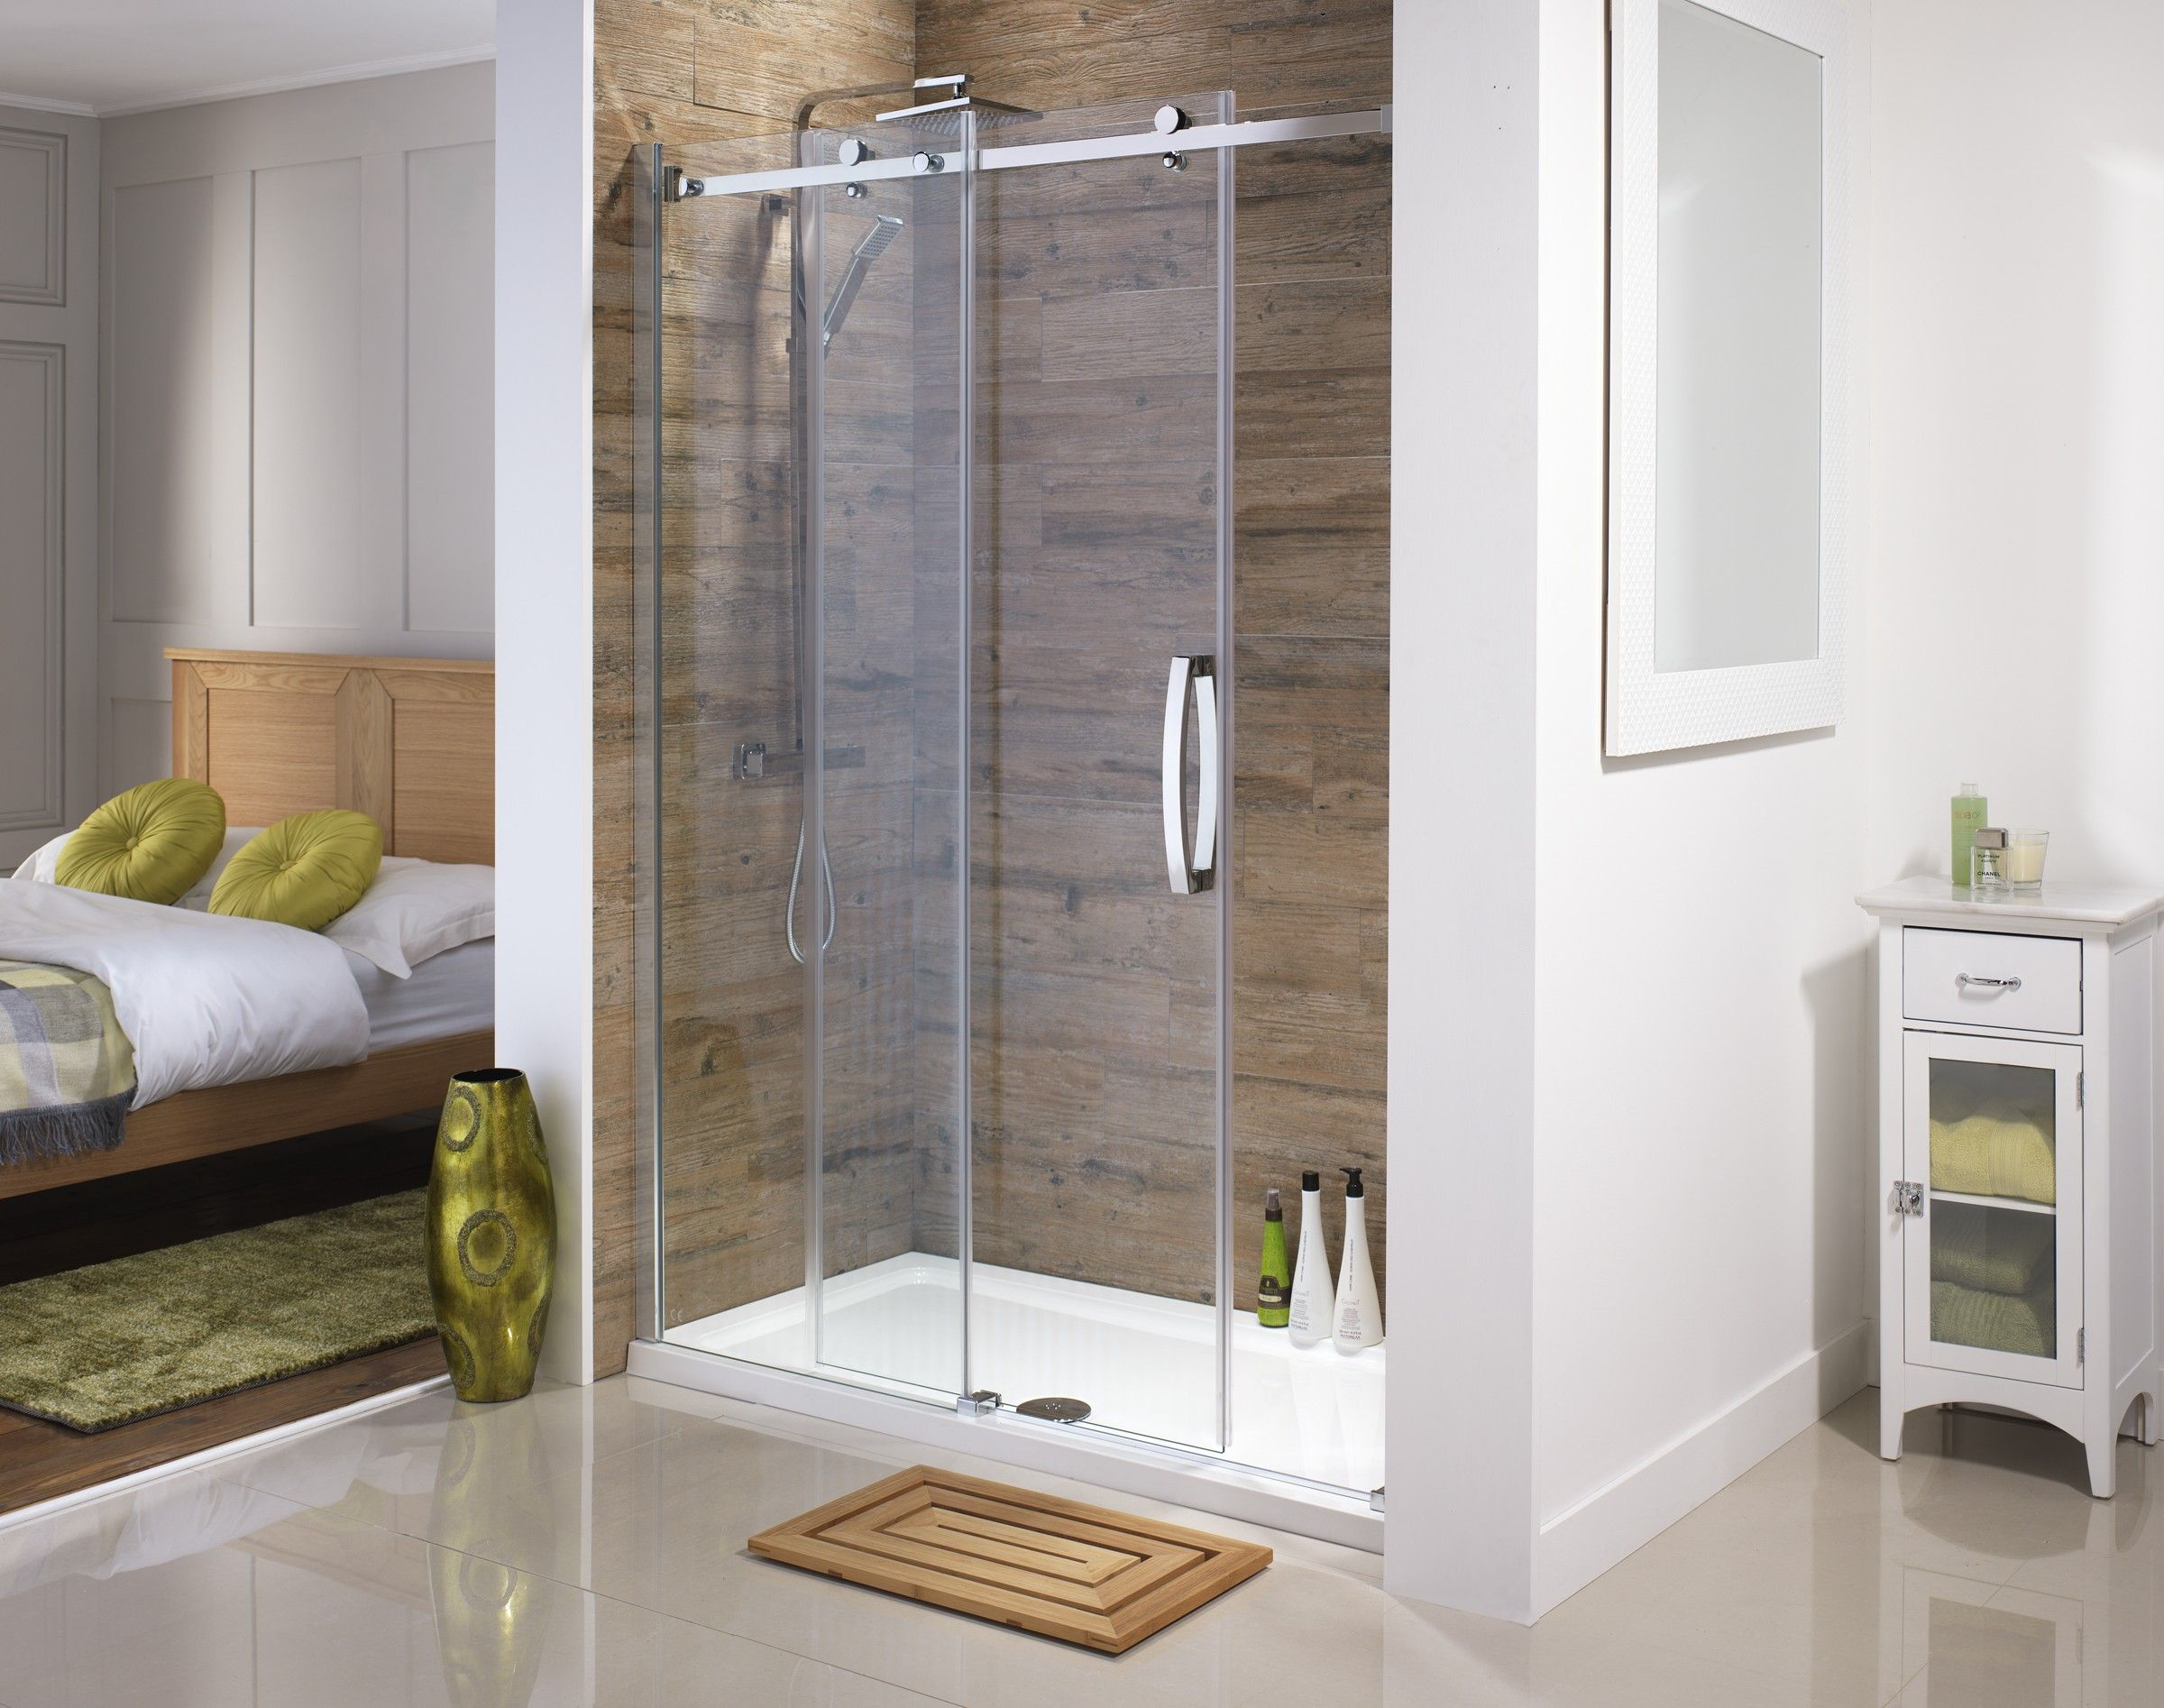 Sliding shower screen - Orca Frameless Sliding Doors Available From Serene Bathrooms